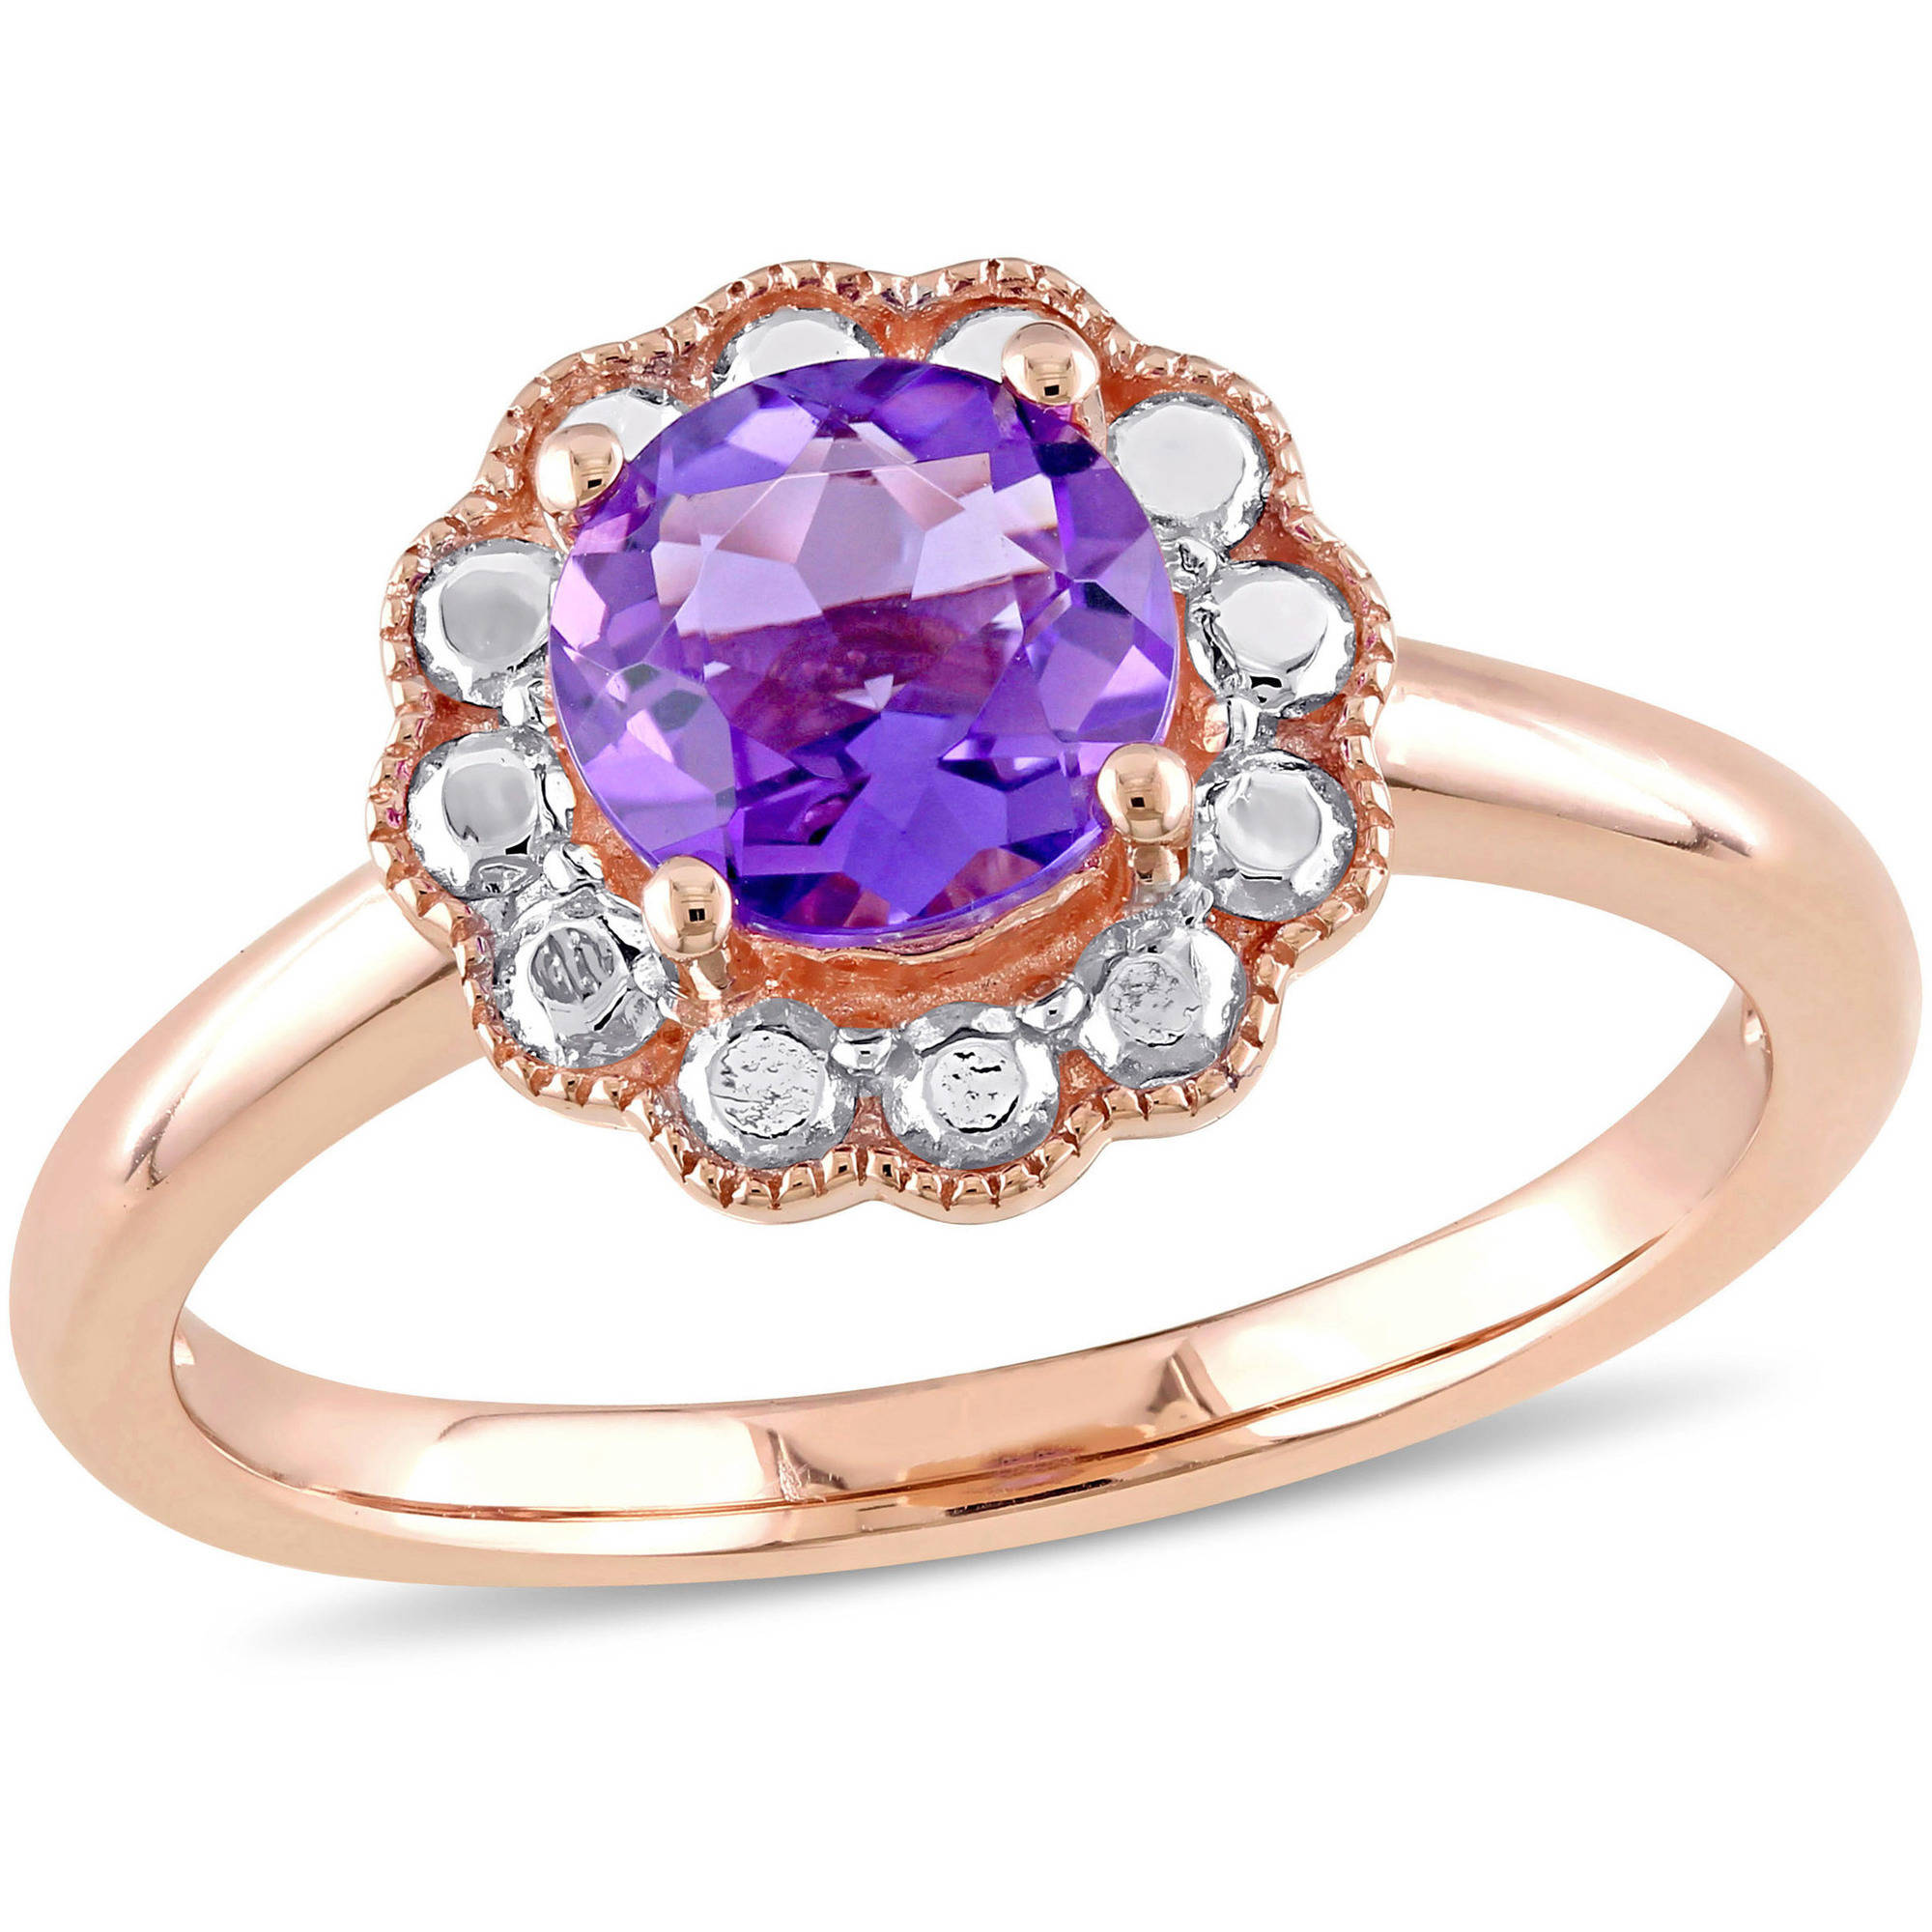 Tangelo 7 8 Carat T.G.W. Amethyst 10kt Rose Gold Flower Cocktail Ring by Tangelo